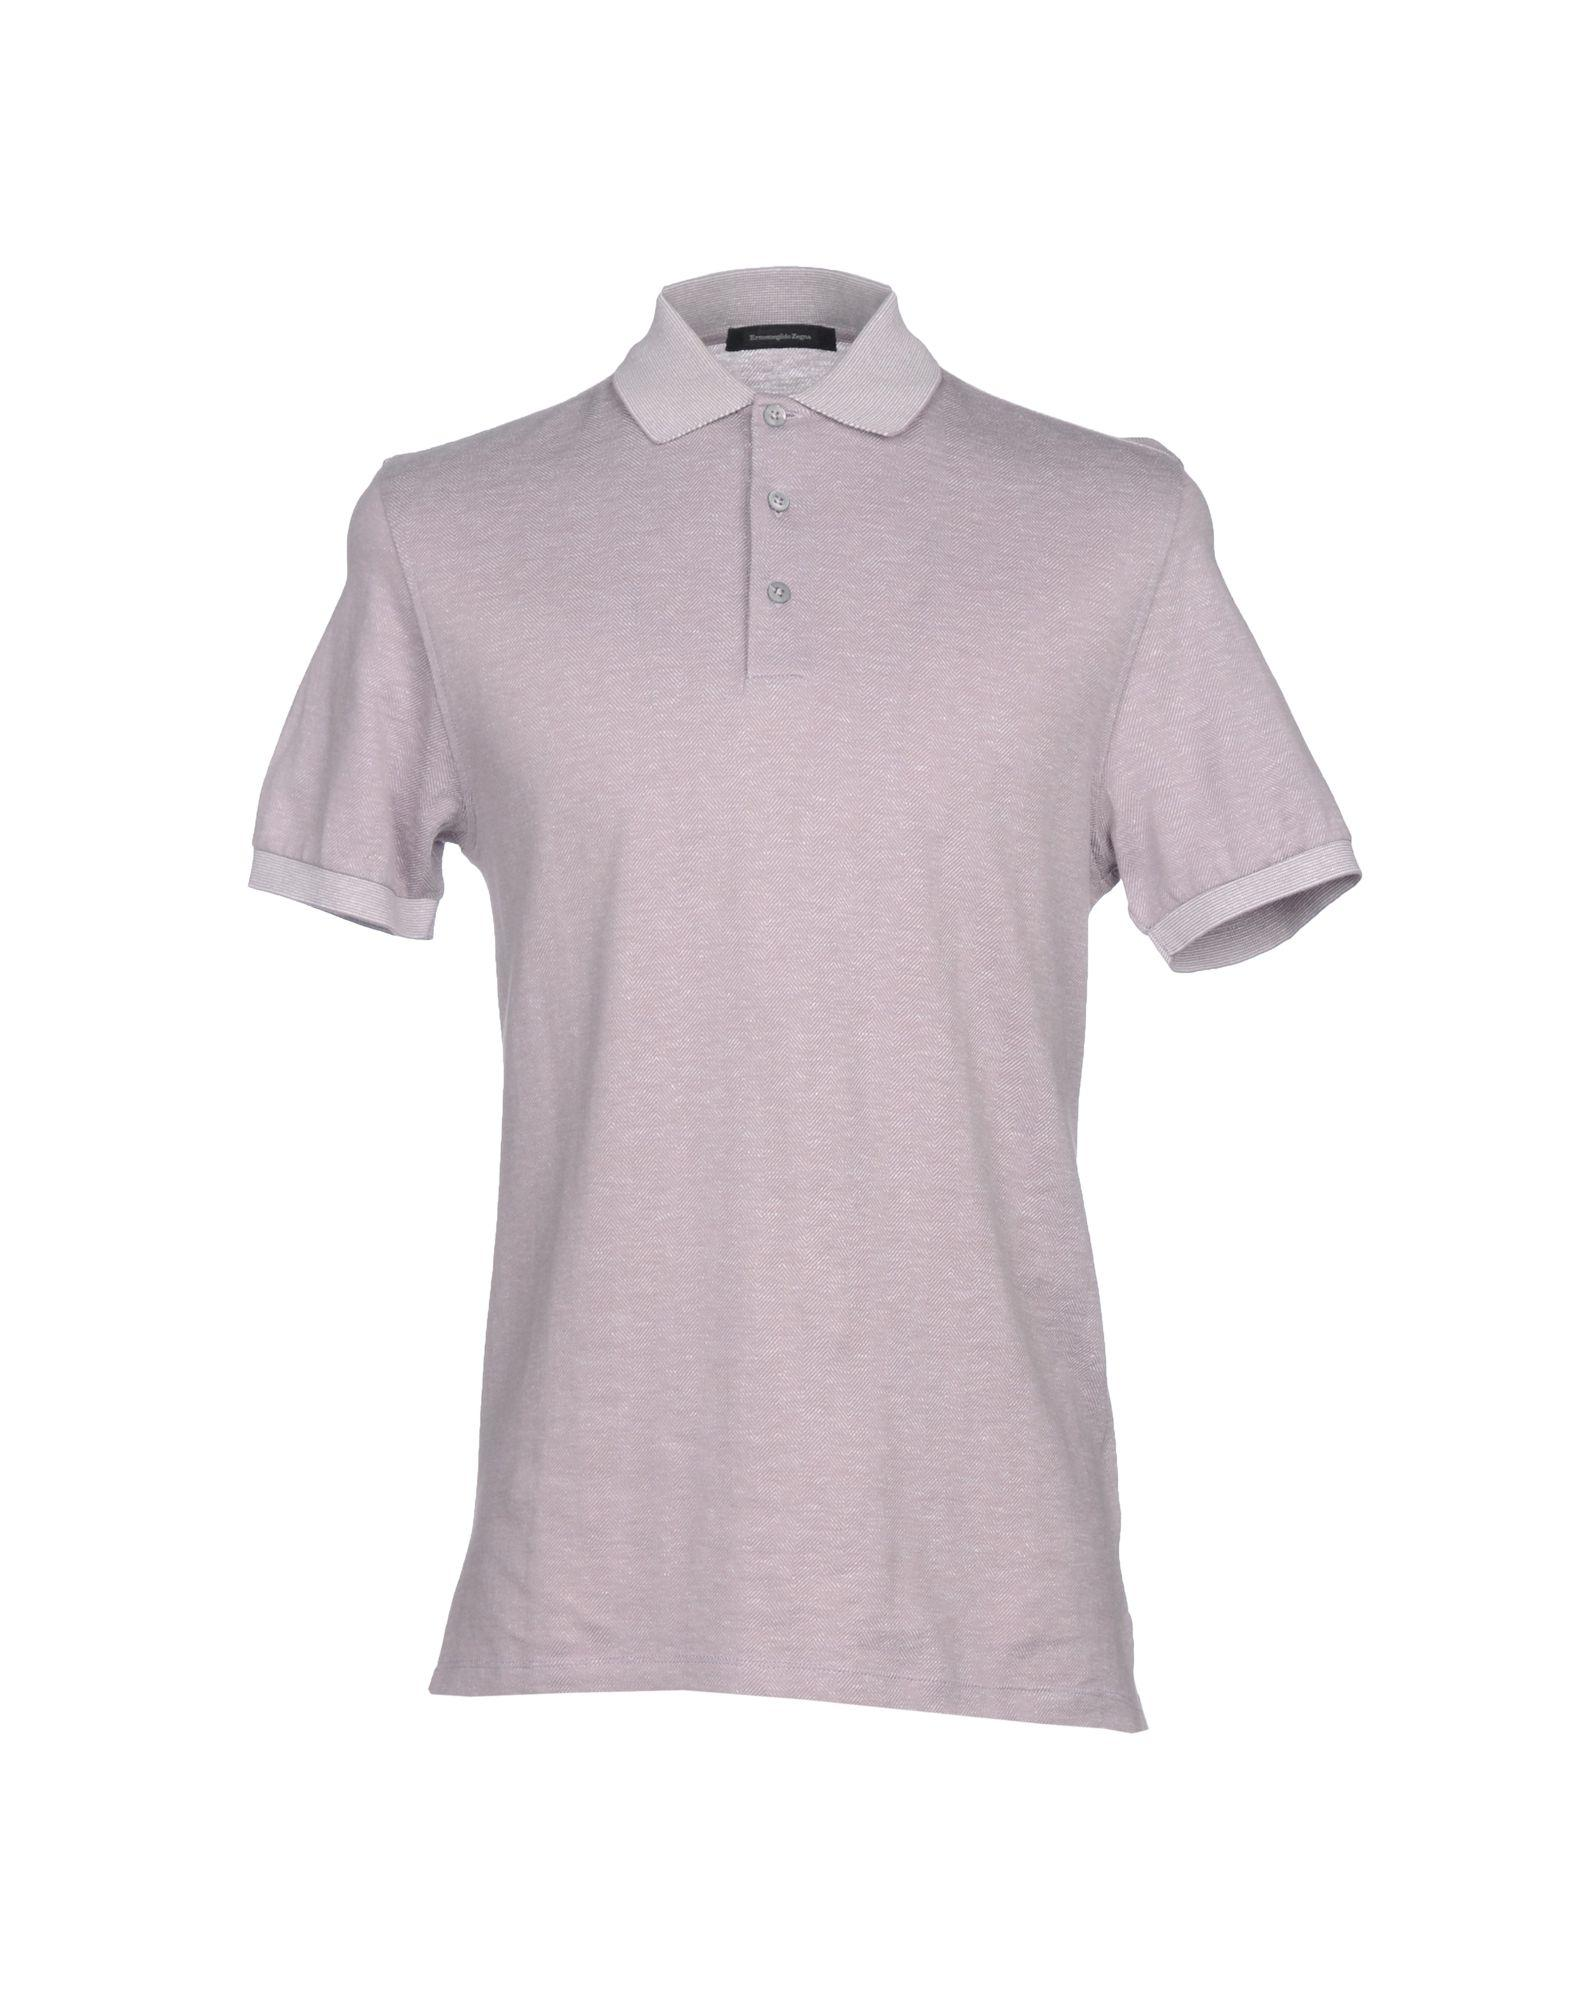 Ermenegildo Zegna Polo Shirts In Dove Grey